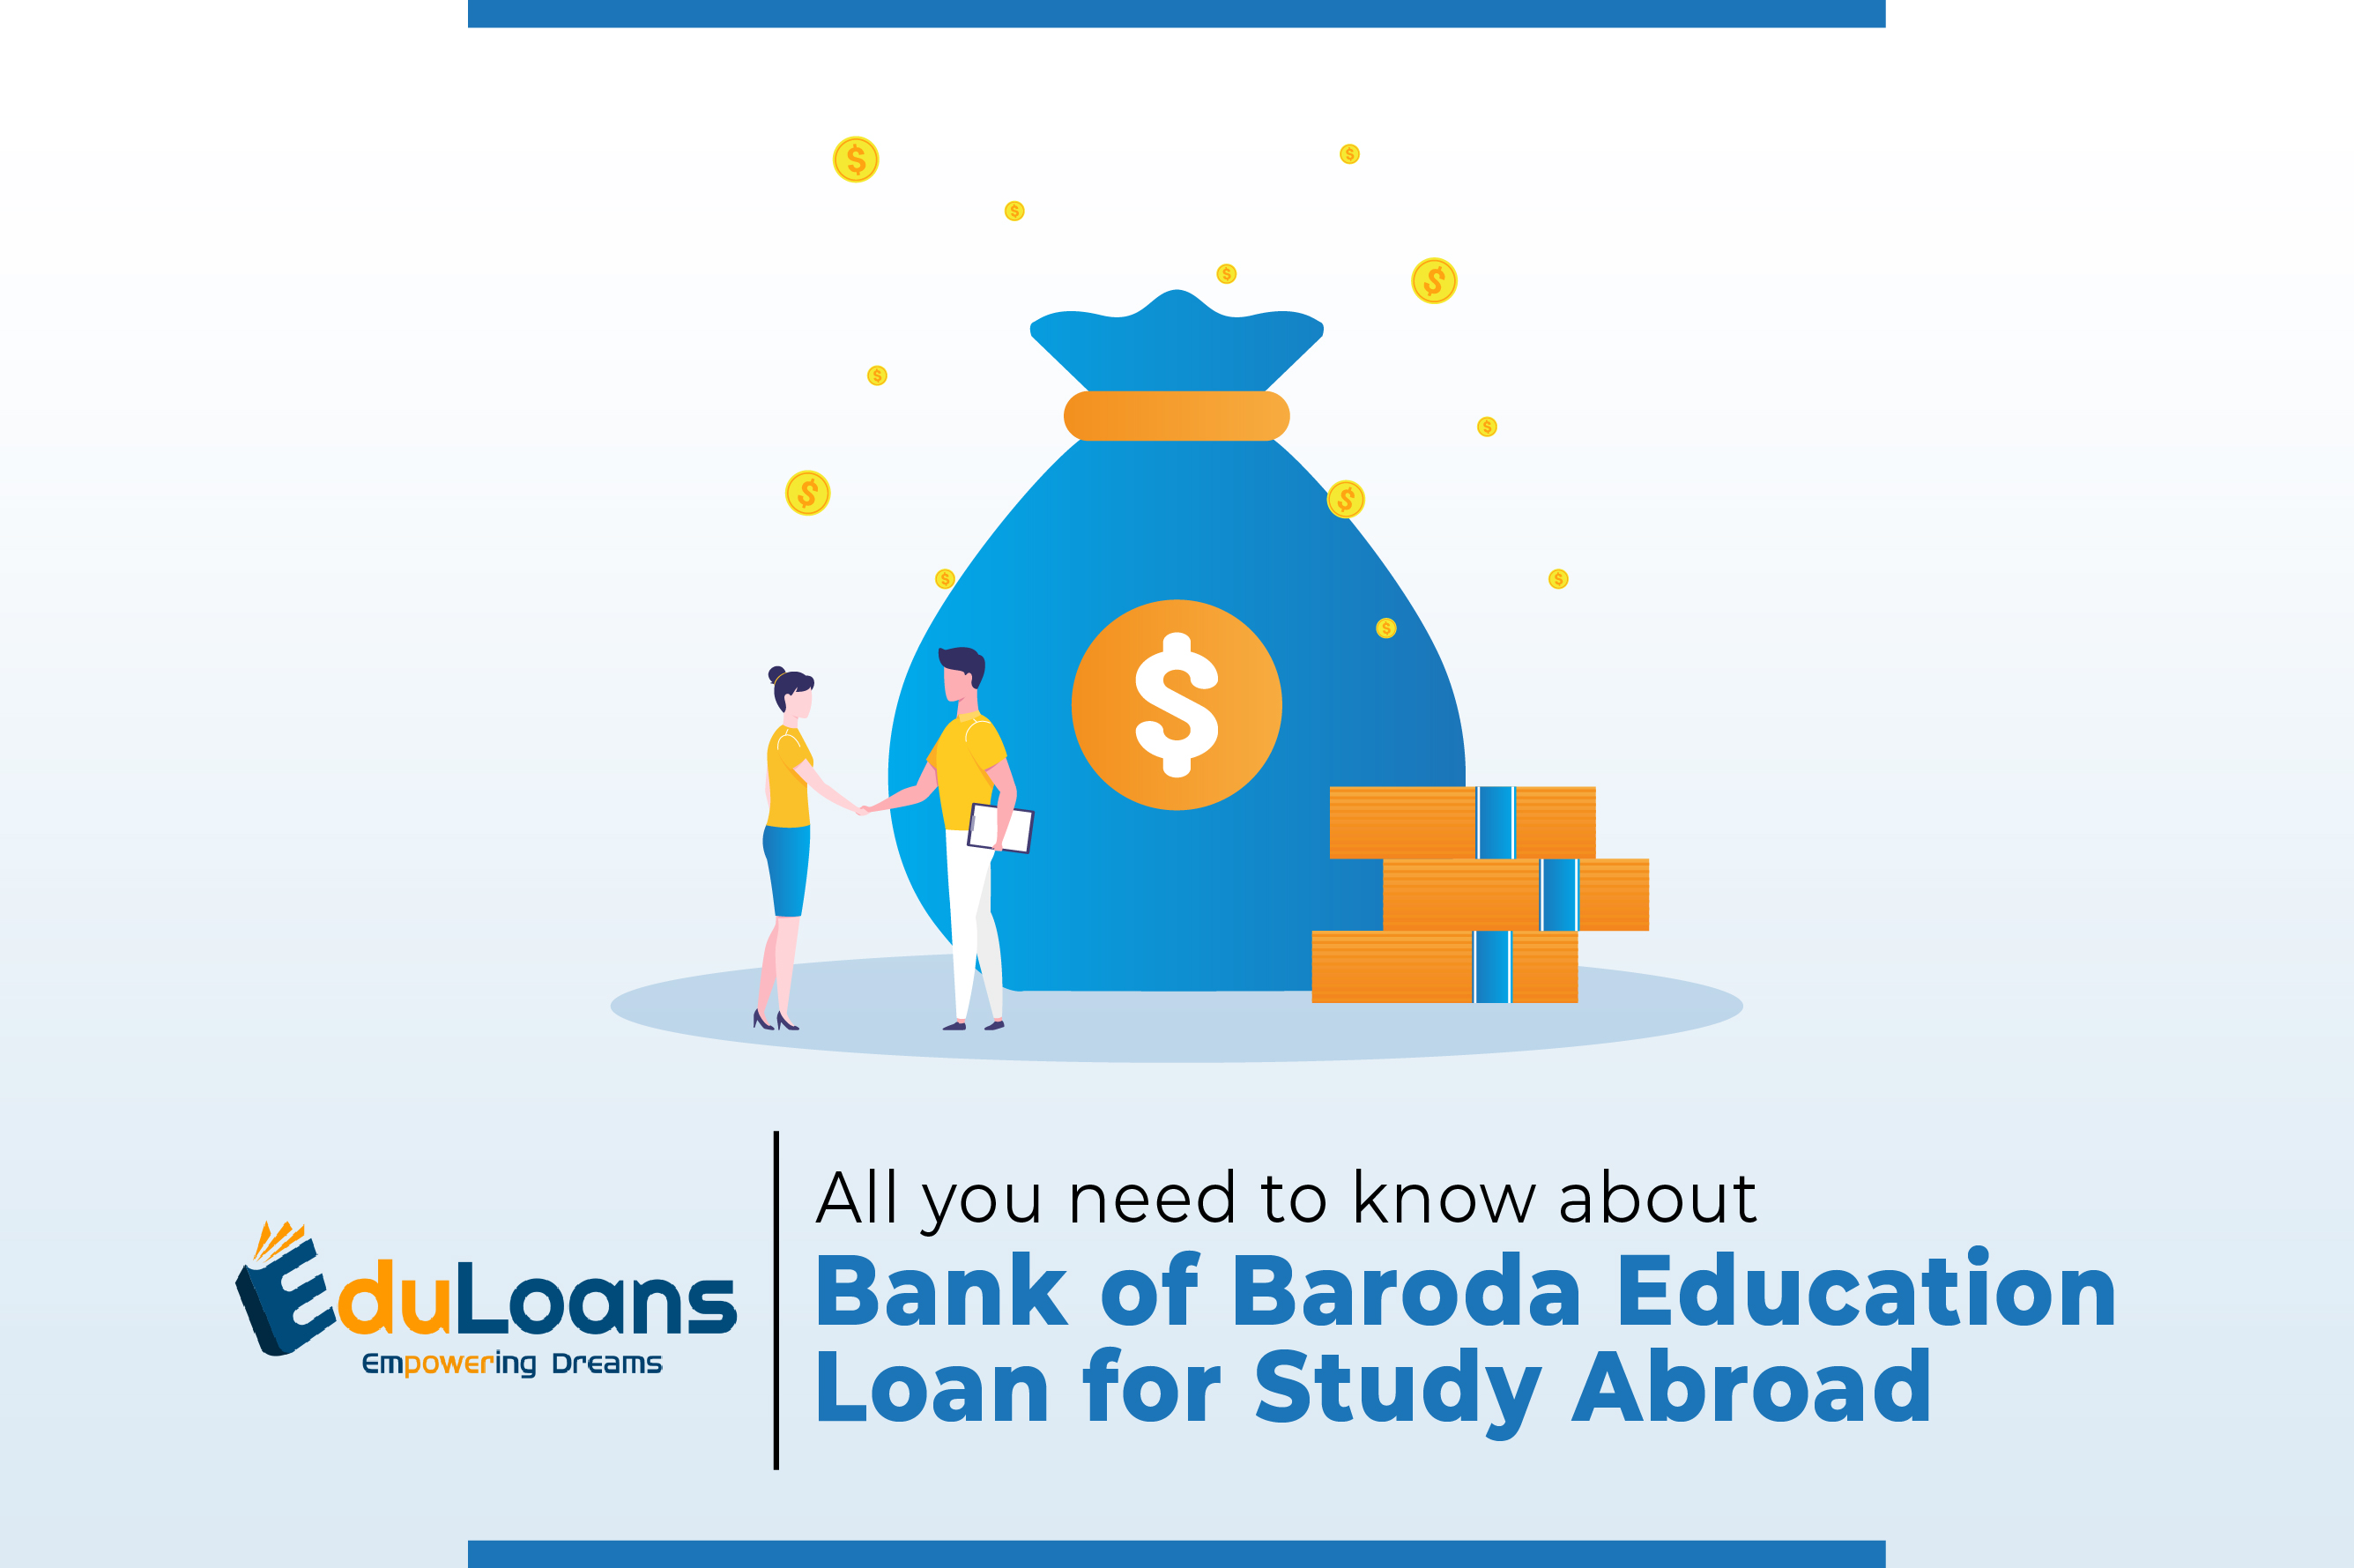 All You Need to Know About Bank of Baroda Education Loan for Study Abroad